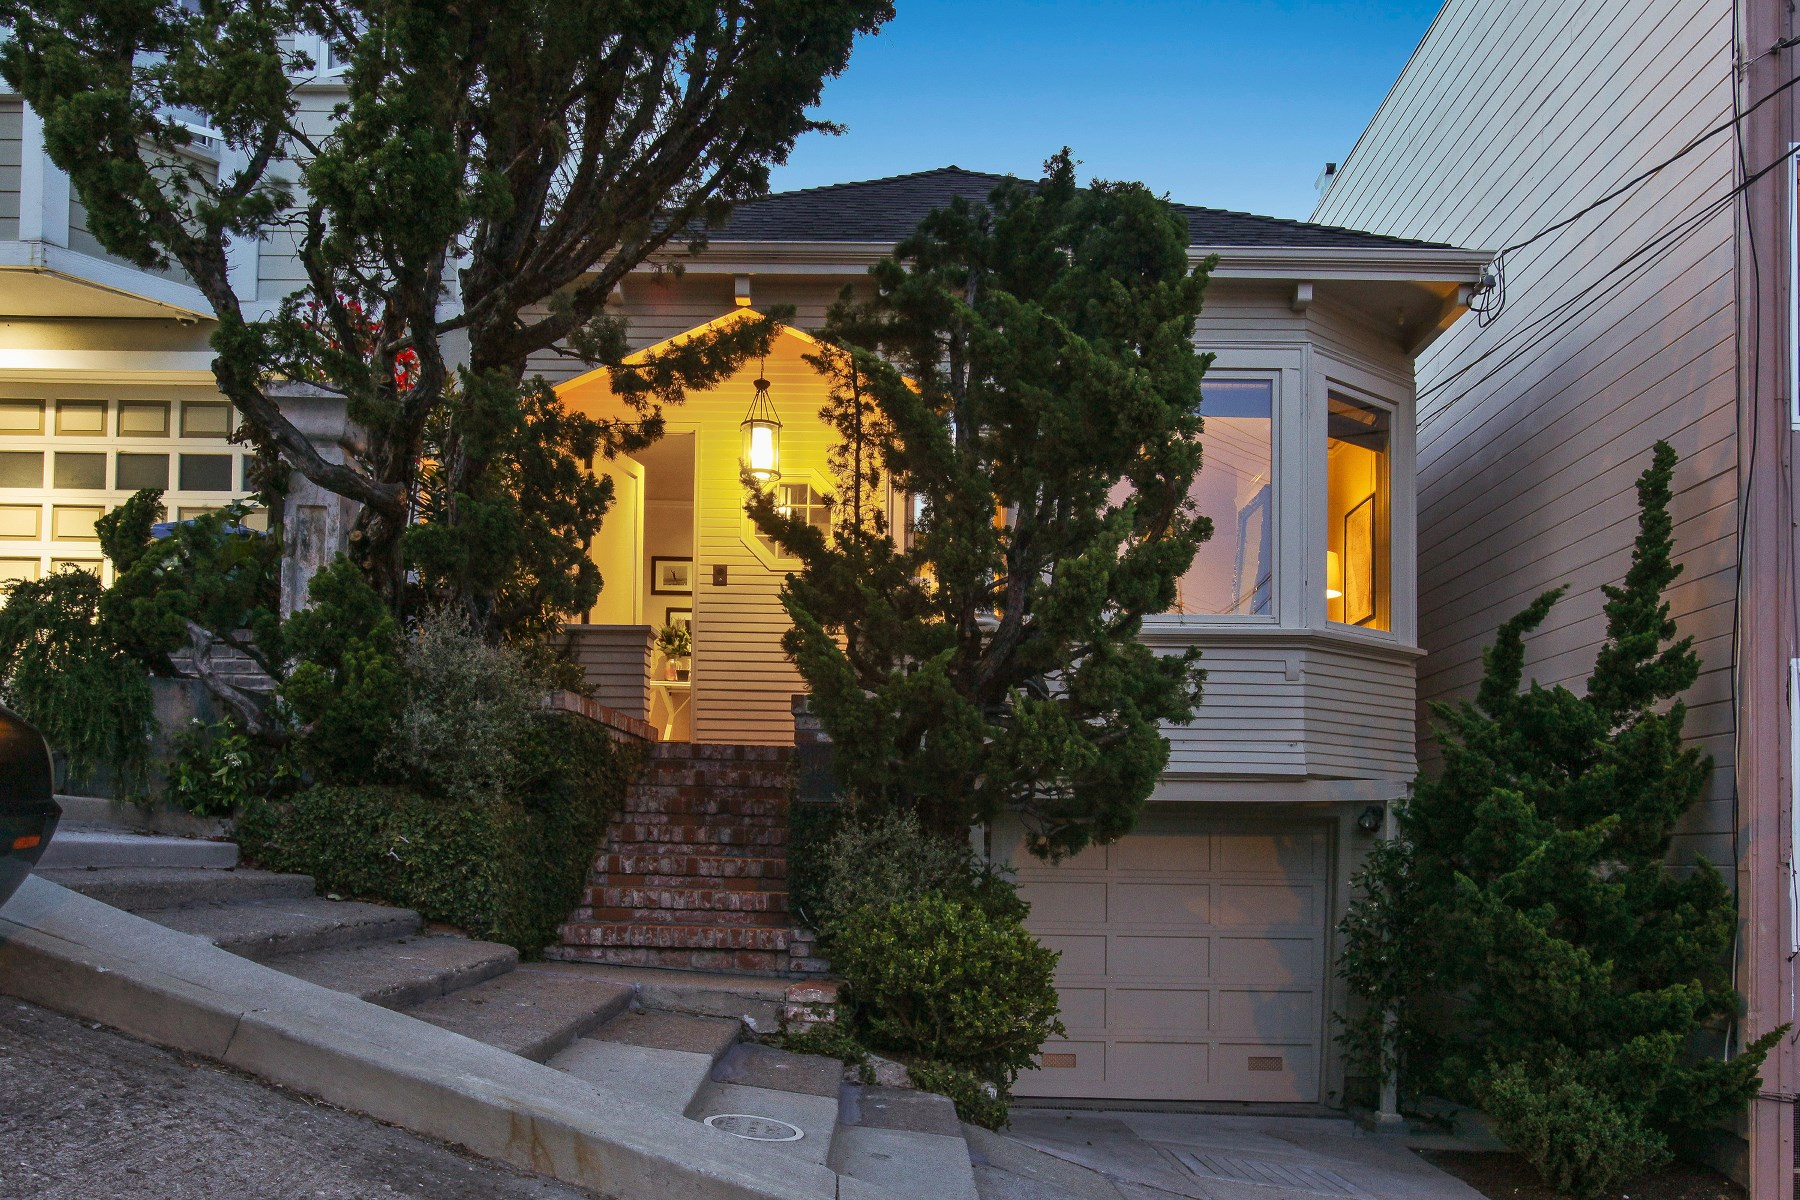 Single Family Home for Sale at Fabled Dolores Heights Home 3622 22nd St Noe Valley, San Francisco, California, 94114 United States